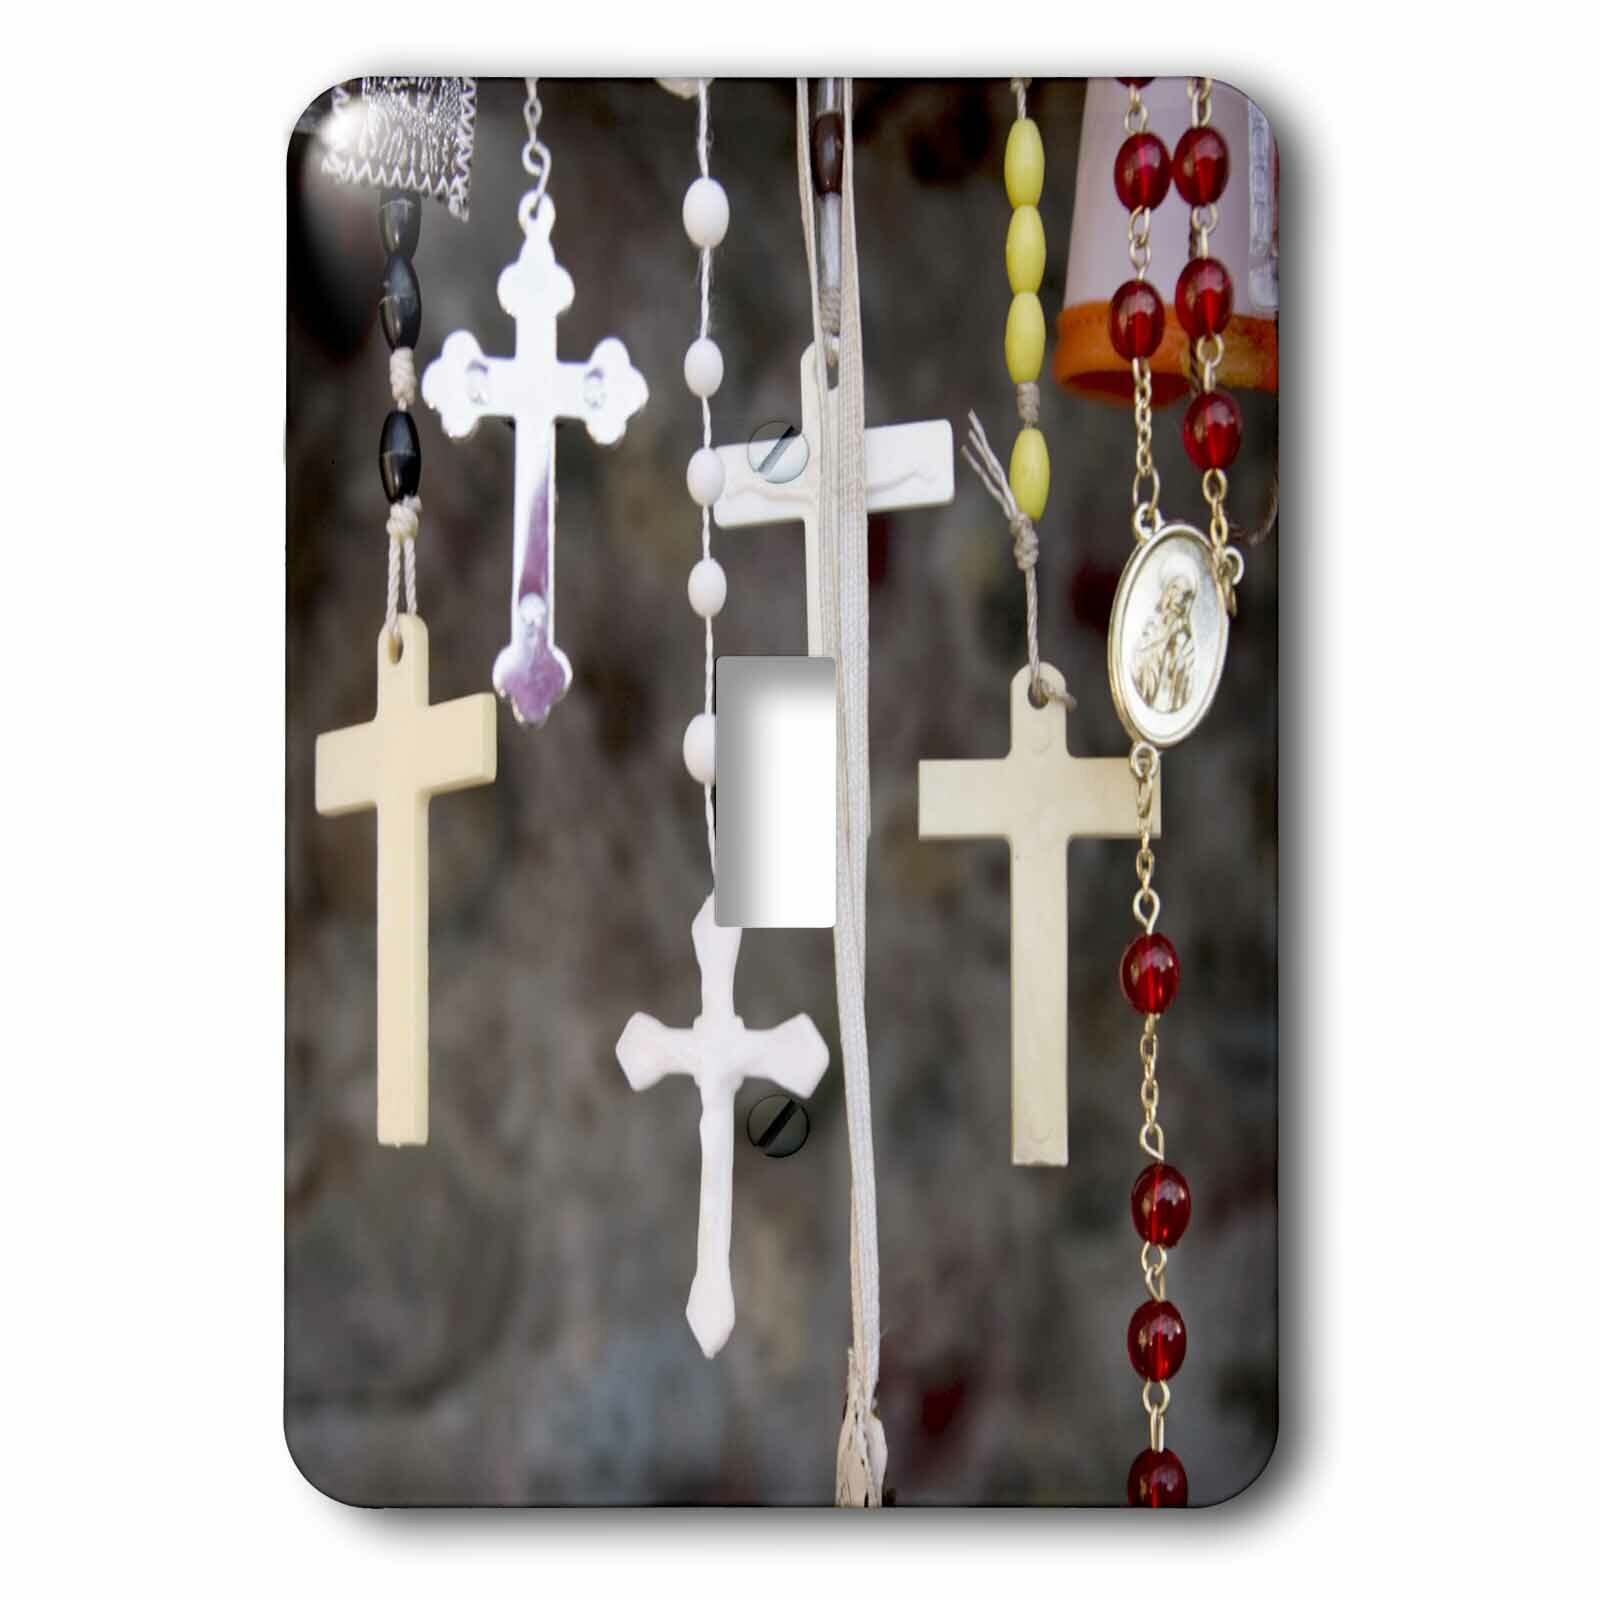 3drose Rosaries Christianity 1 Gang Toggle Light Switch Wall Plate Wayfair